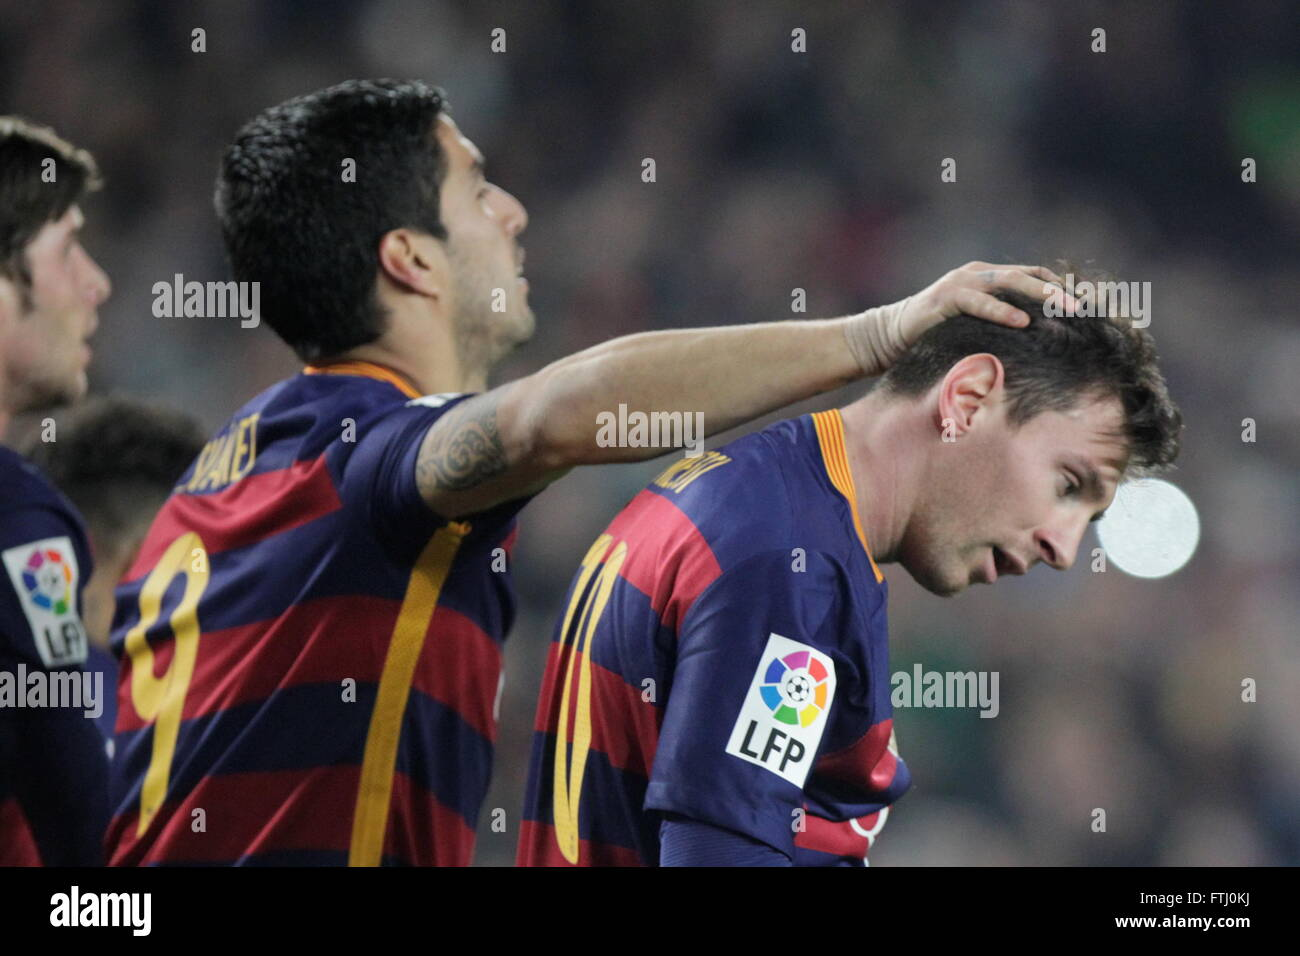 Barcelona, Spain, January 27, 2016: King's Cup: congratulation after the goal of Luis Suarez - Stock Image